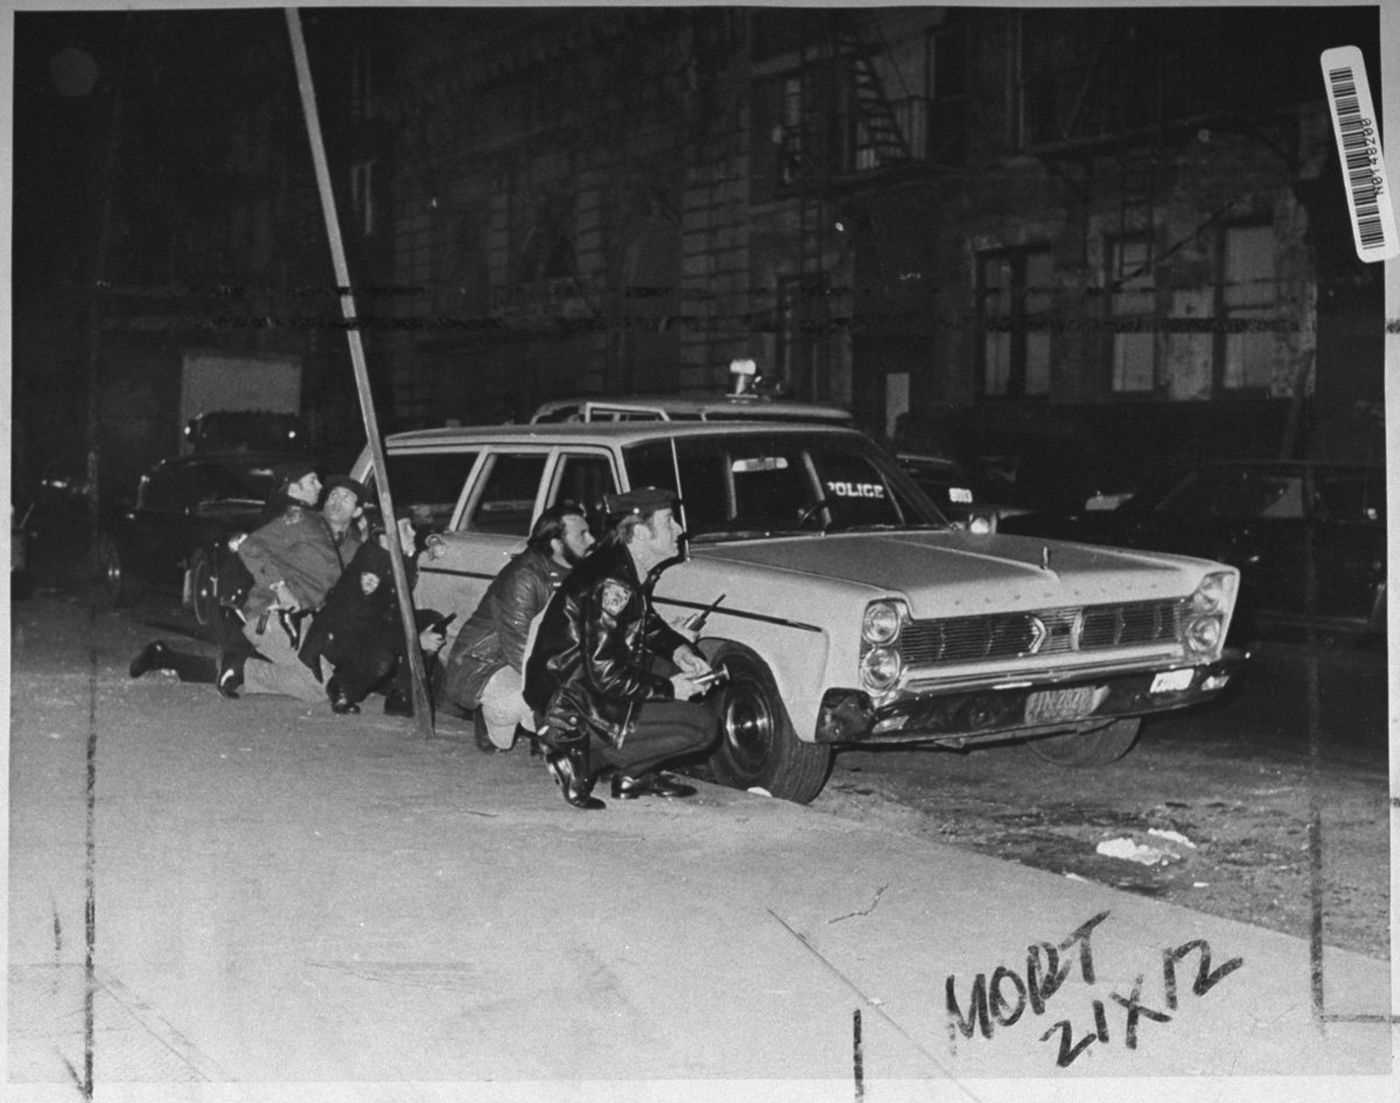 Police officers behind a car near the crime scene